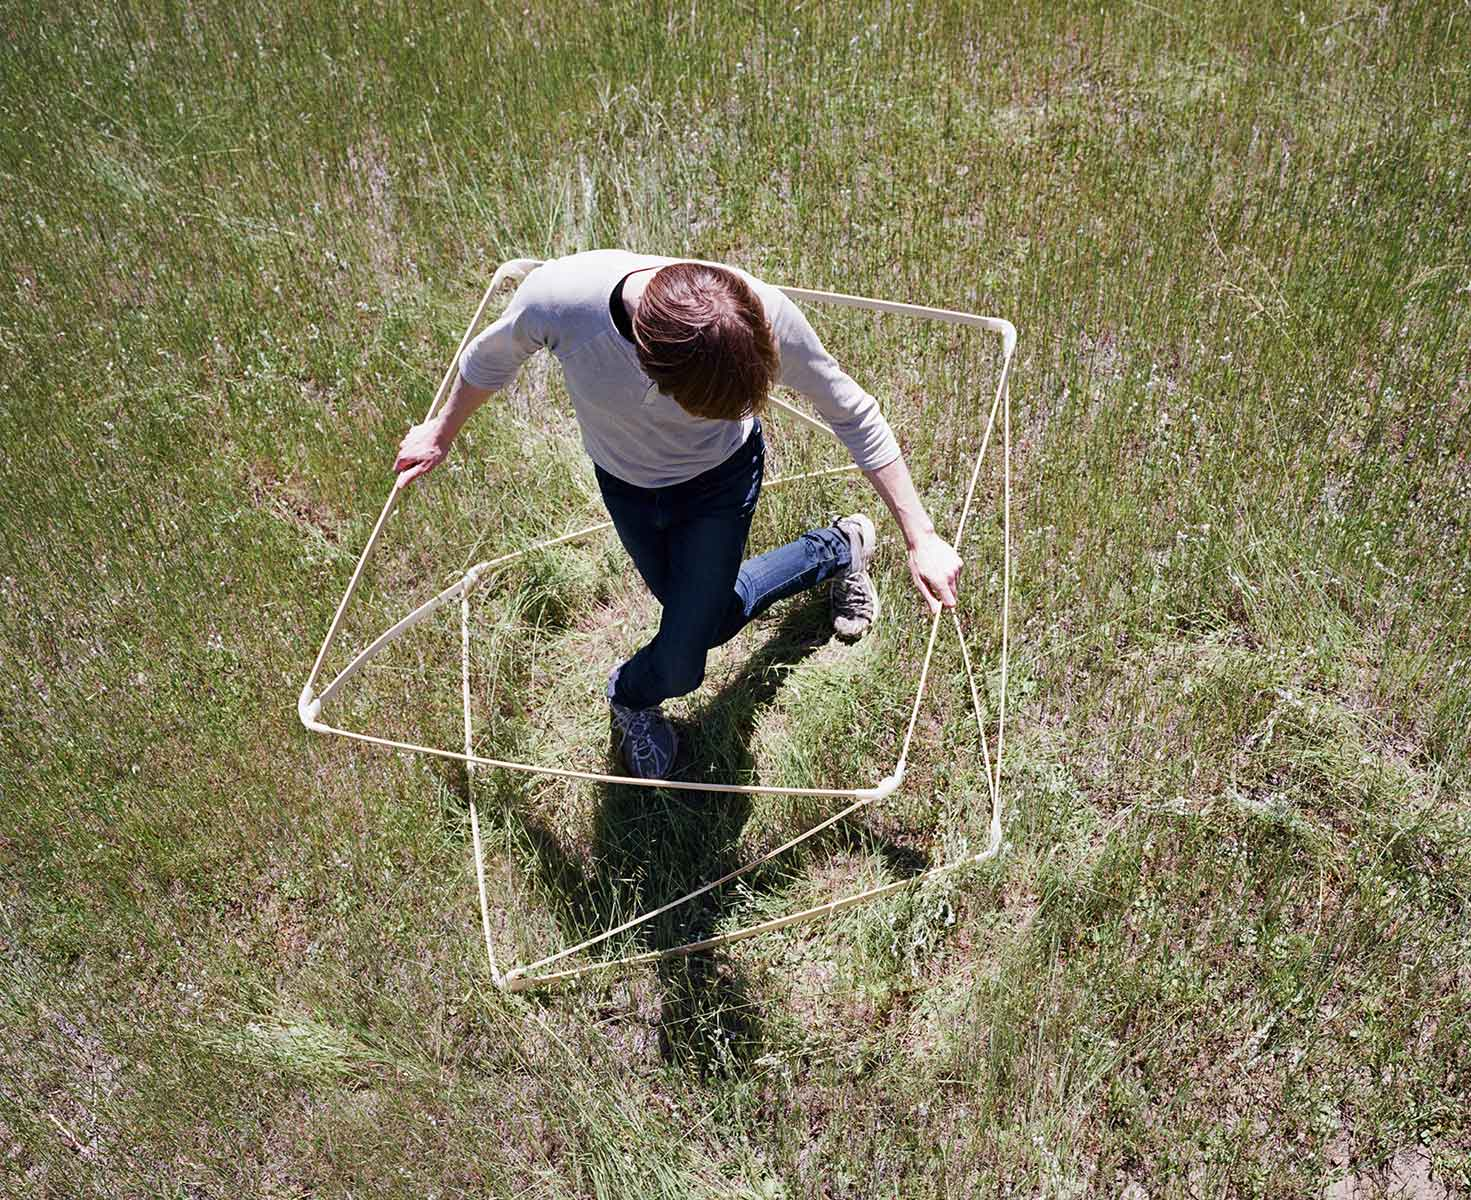 Data scientist Siobhán K. Cronin tests the geometric boundaries of designer Maria Blaisse's bamboo cube. Photo: Terri Lowenthal for Slow Research Lab